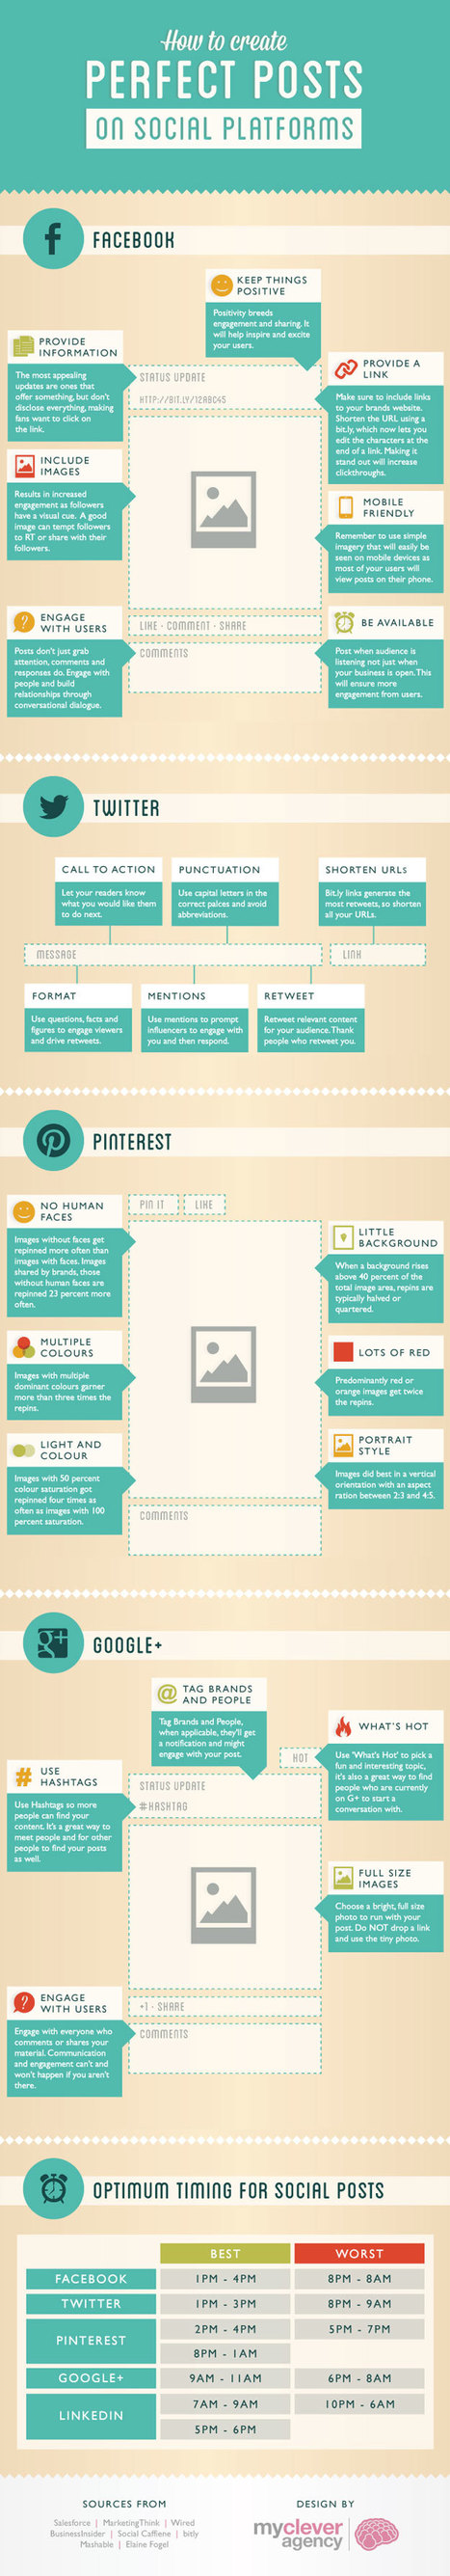 How To Create Effective Posts On The 4 Main Social Sites [Infographic] | Content Marketing for Businesses | Scoop.it